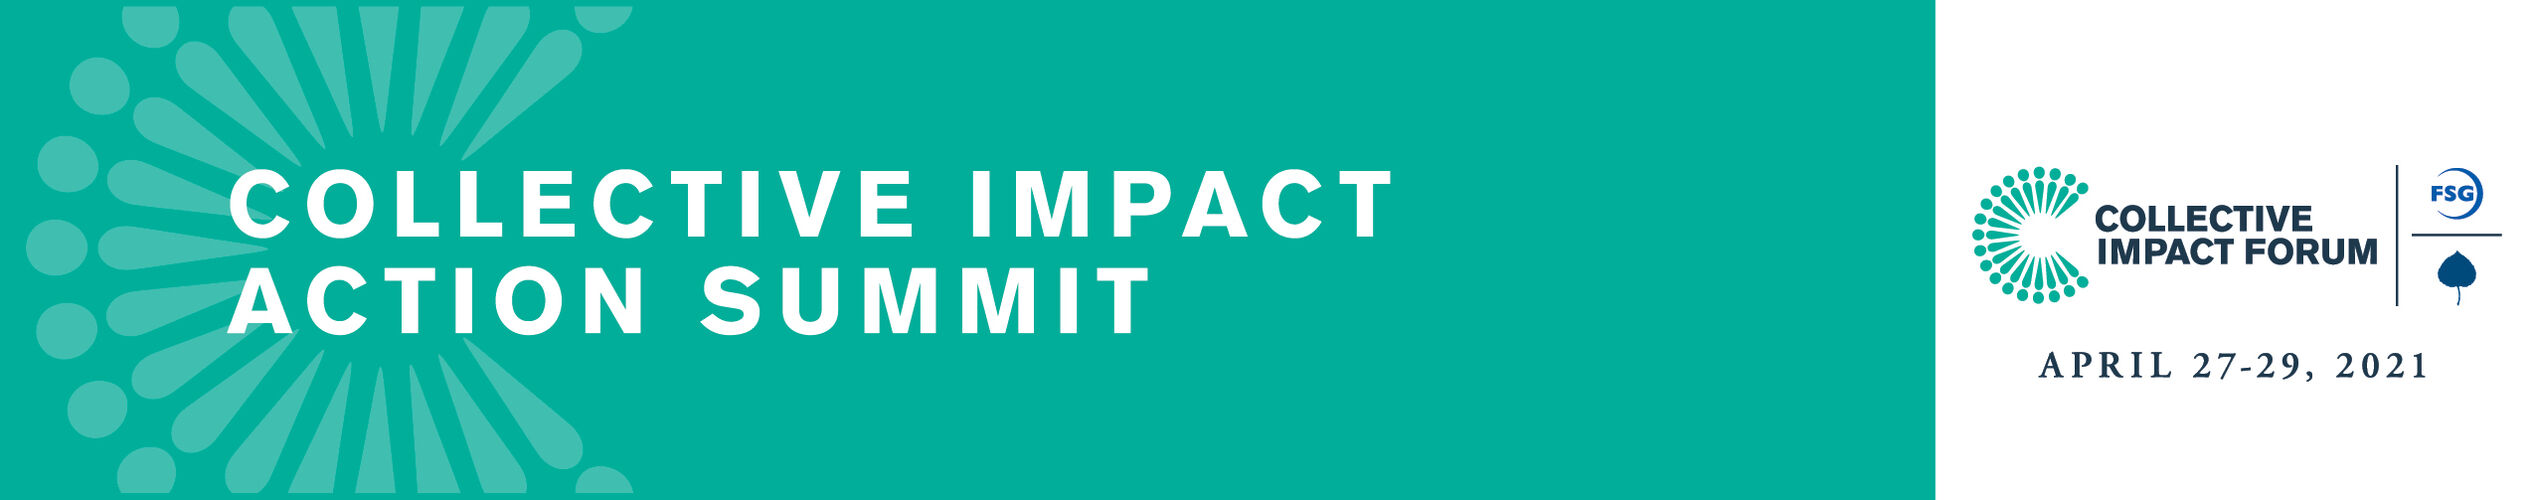 2021 Collective Impact Action Summit - Coaching